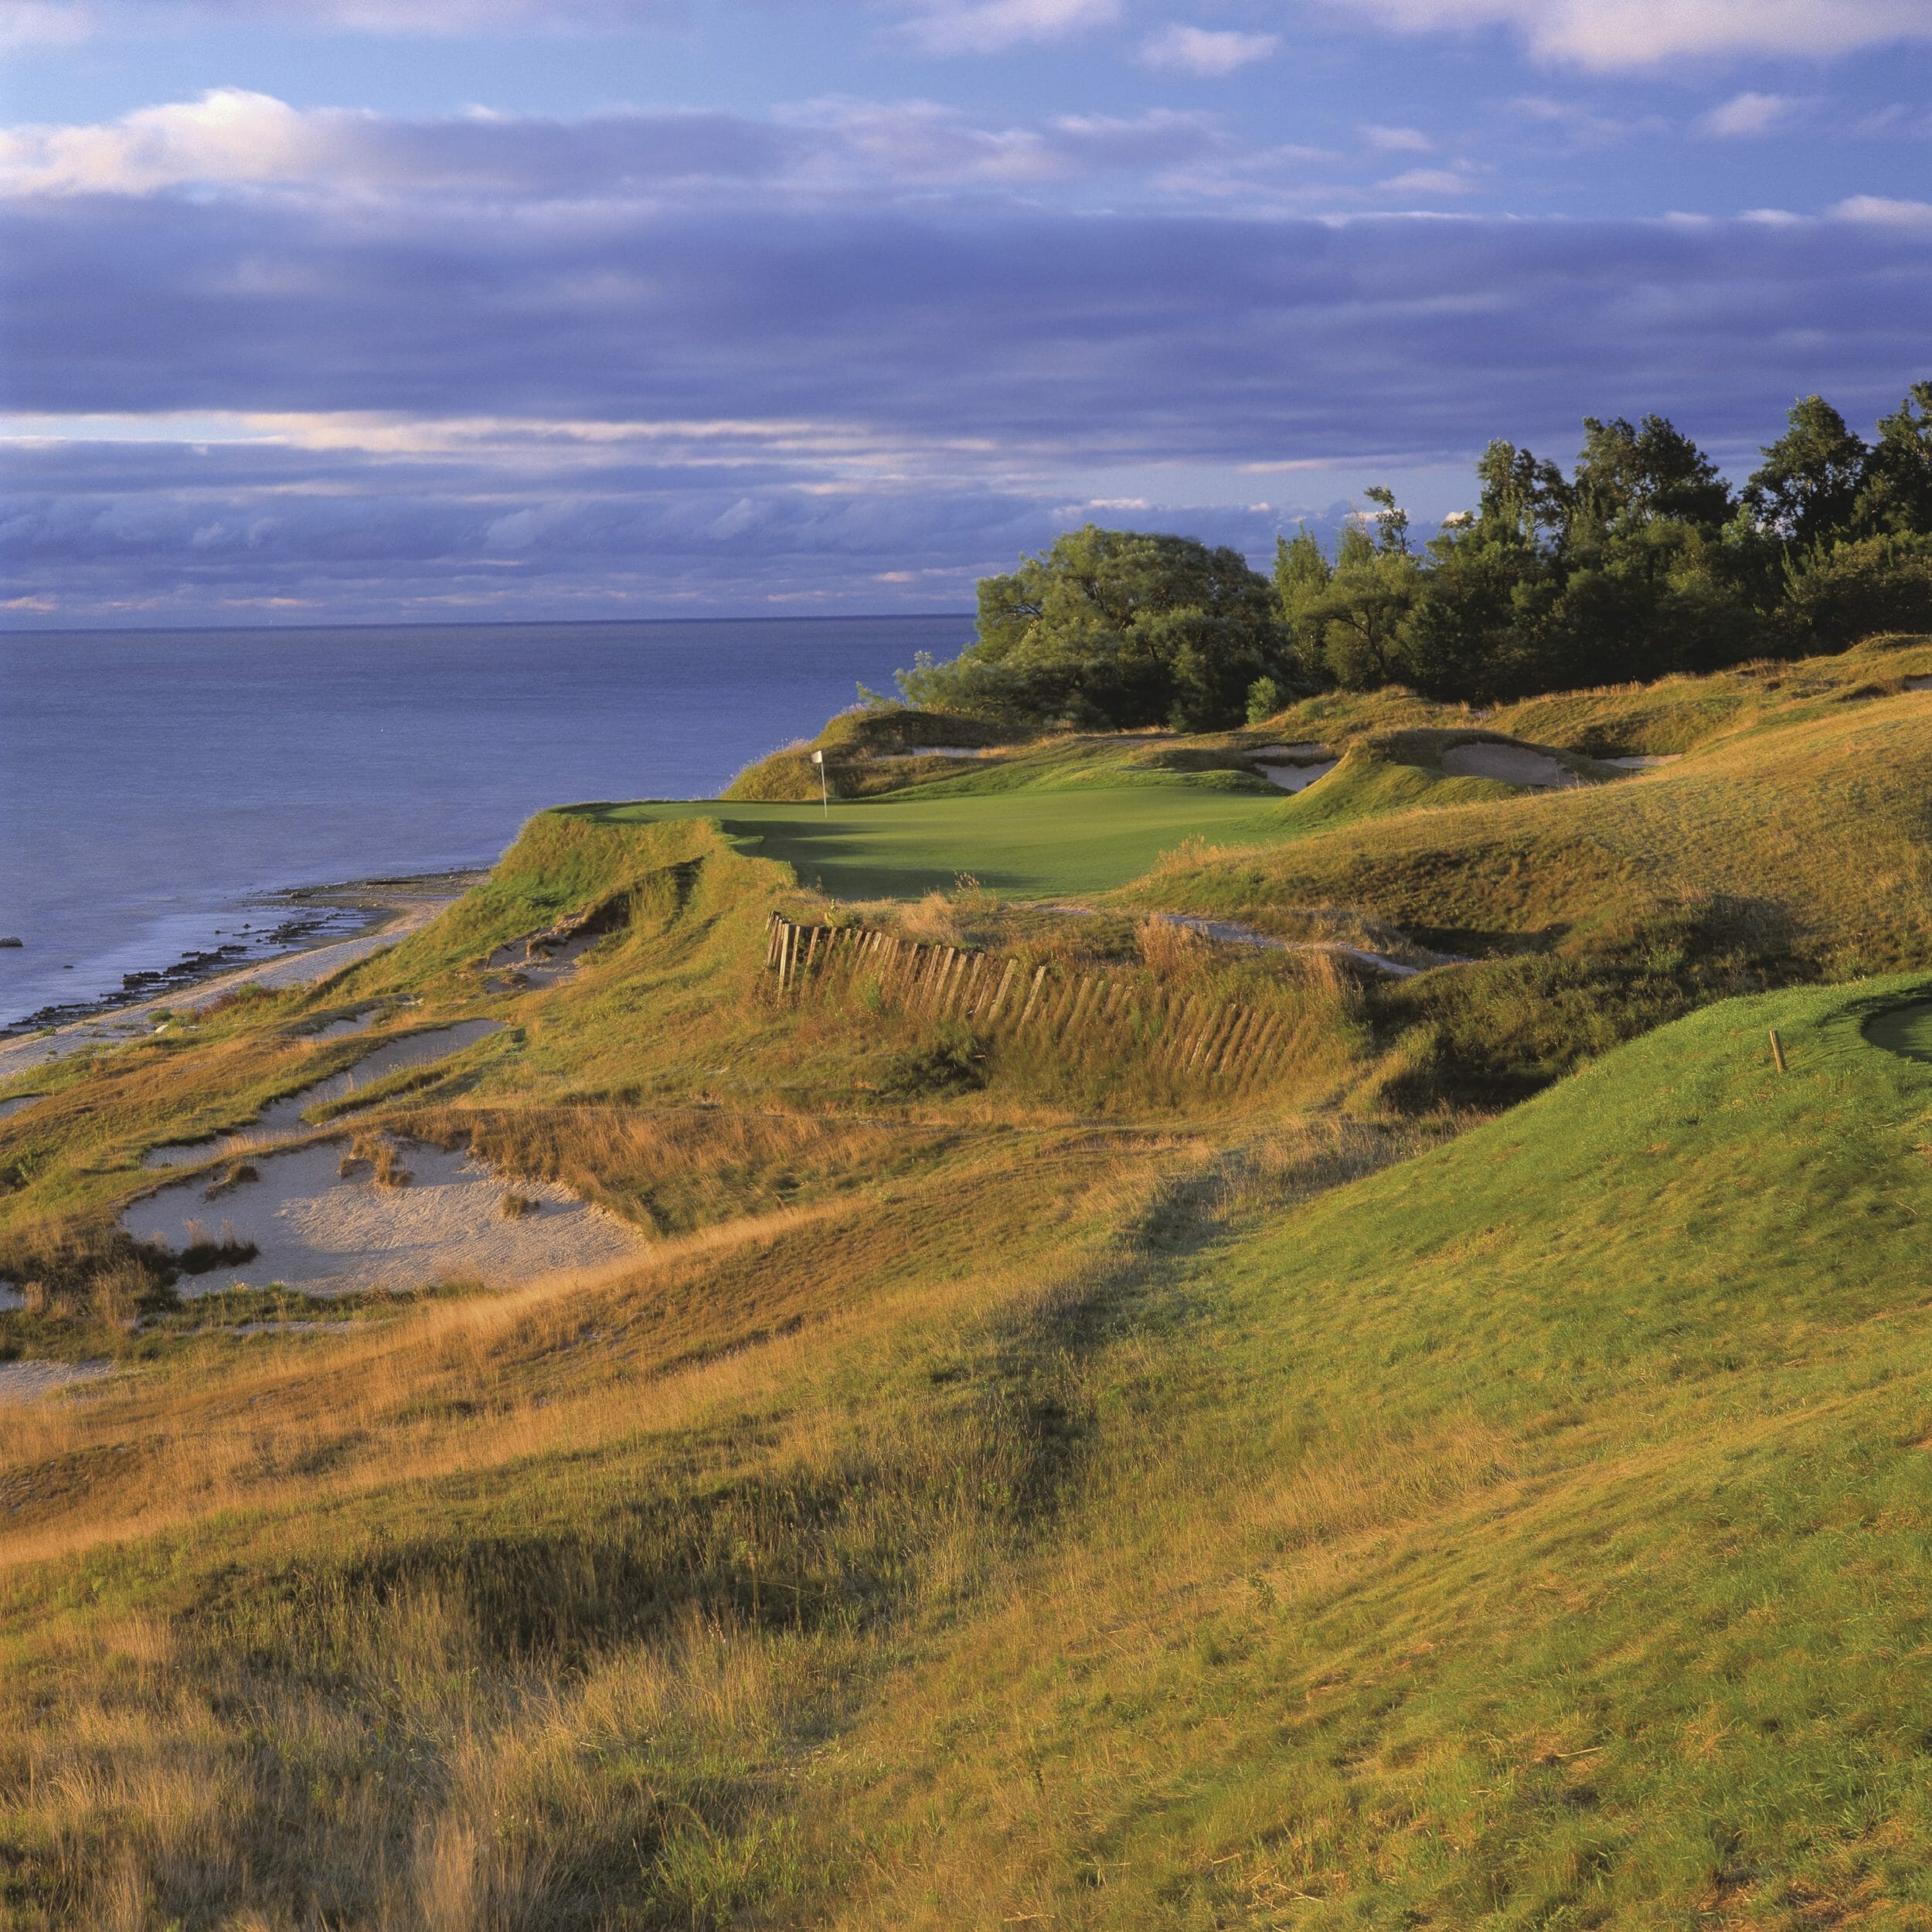 Image depicting the 17th tee on The Straits Golf Course at Destination Kohler, Wisconsin, USA